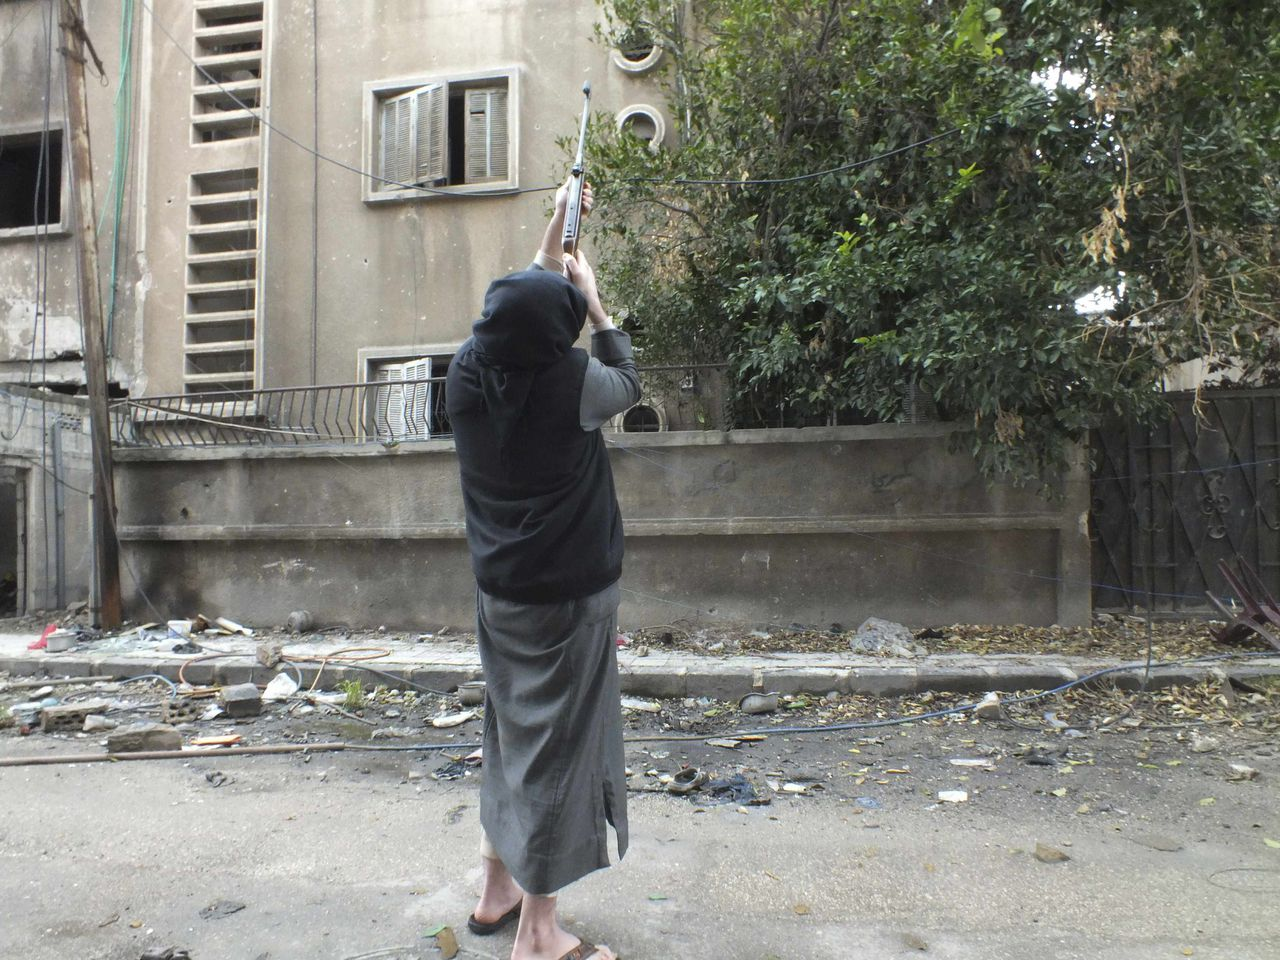 A man uses his rifle to hunt birds for food in the al-Khalidiya neighbourhood of Homs December 5, 2012. REUTERS/Yazan Homsy (SYRIA - Tags: CONFLICT SOCIETY)